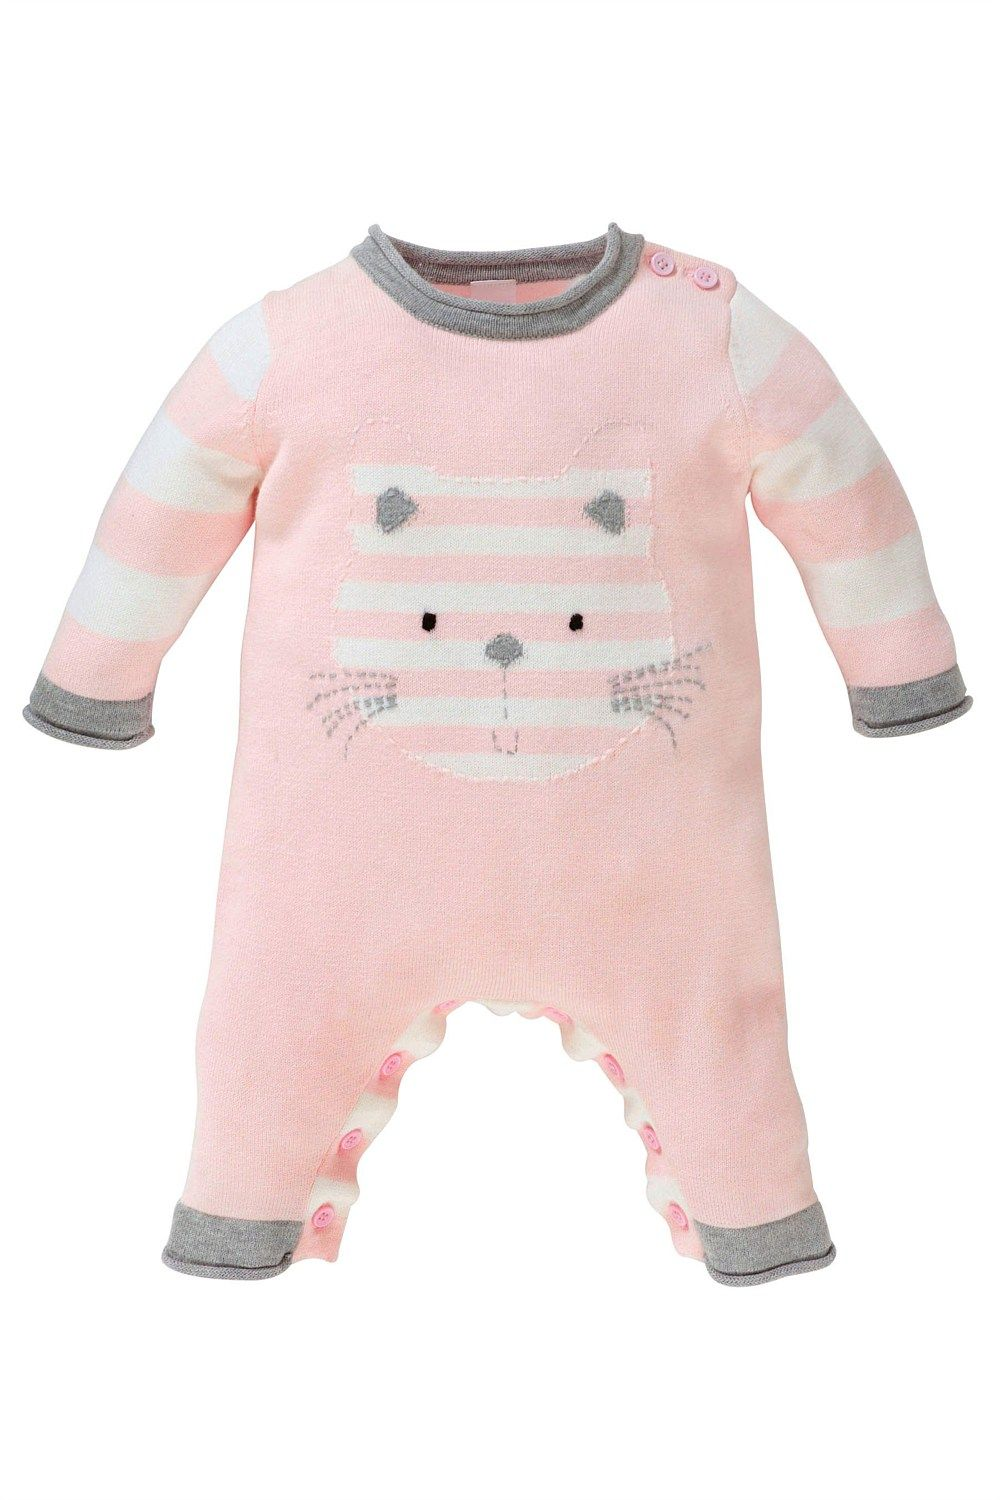 33aaaca42 Newborn Clothing - Baby Clothes and Infantwear - Next Cat Knitted ...